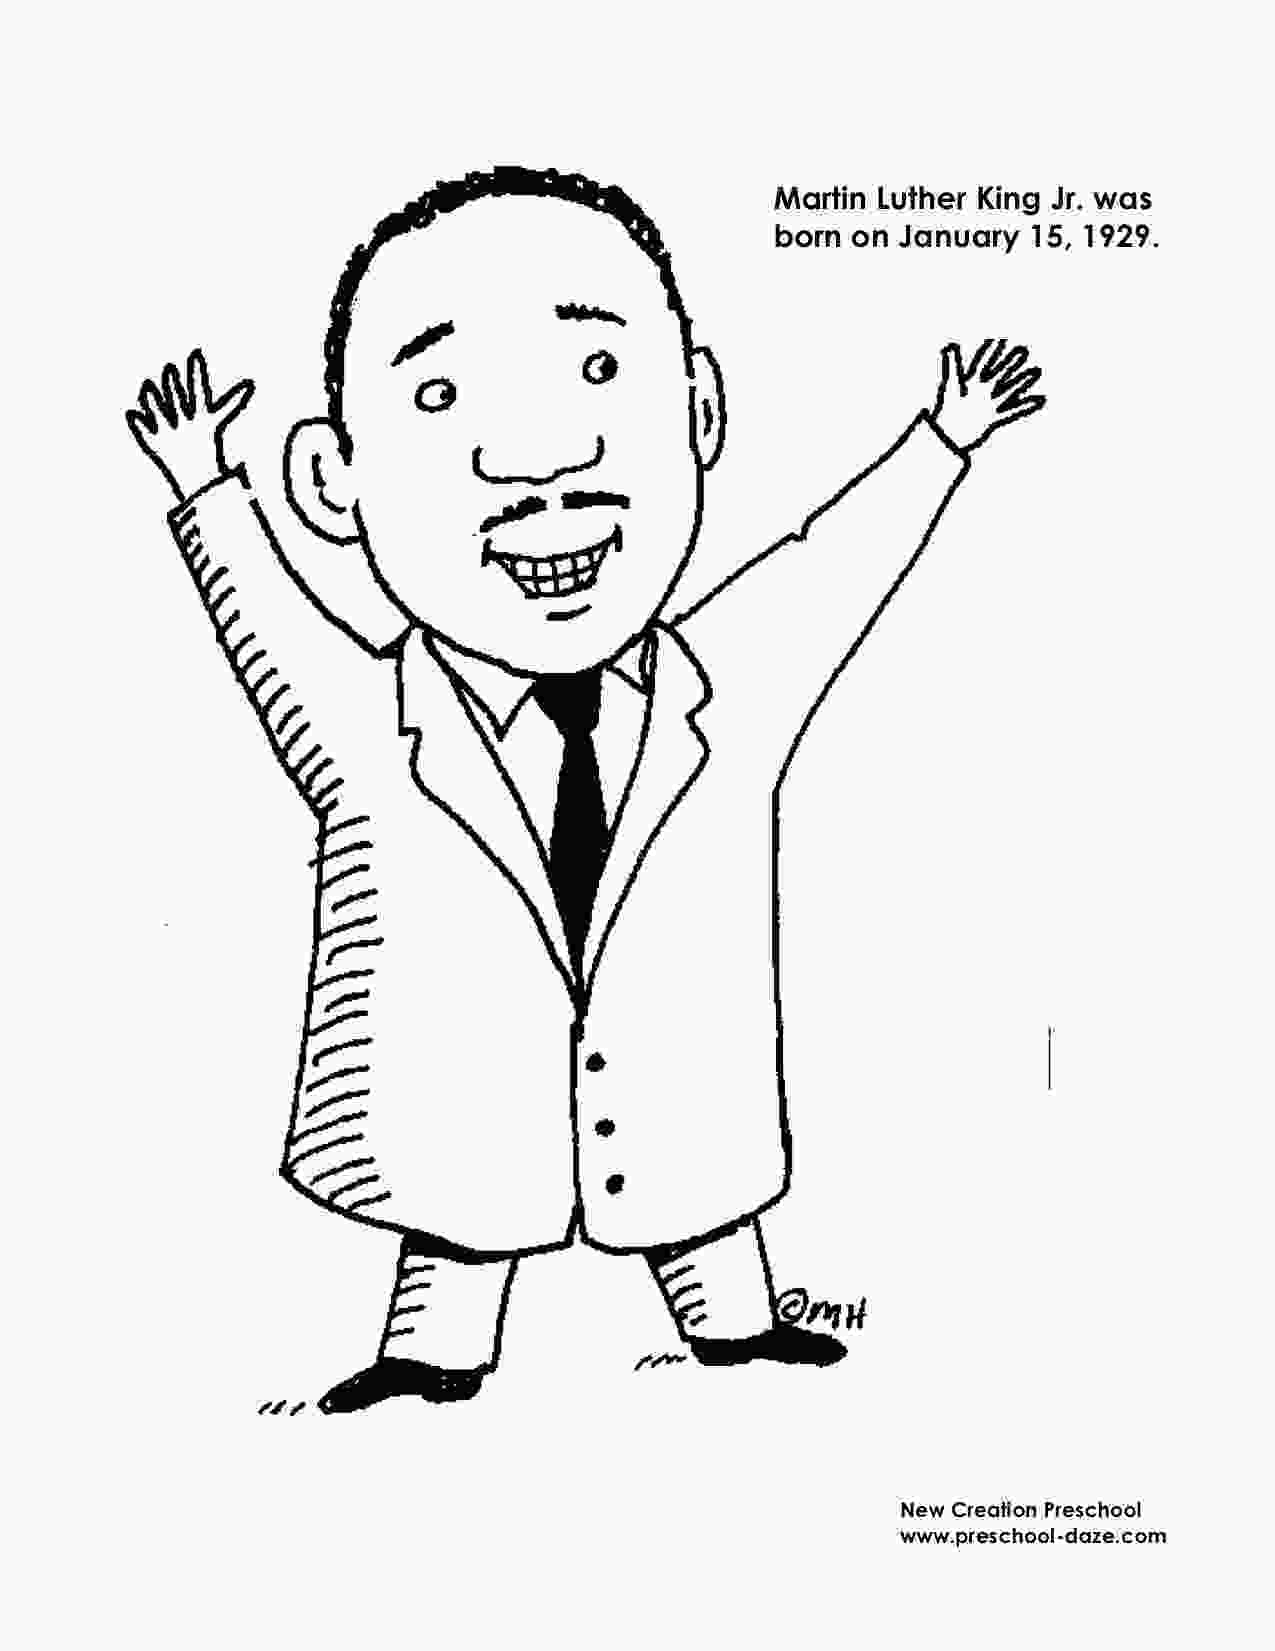 martin luther king jr coloring sheets m is for martin luther king jr printables preschool daze